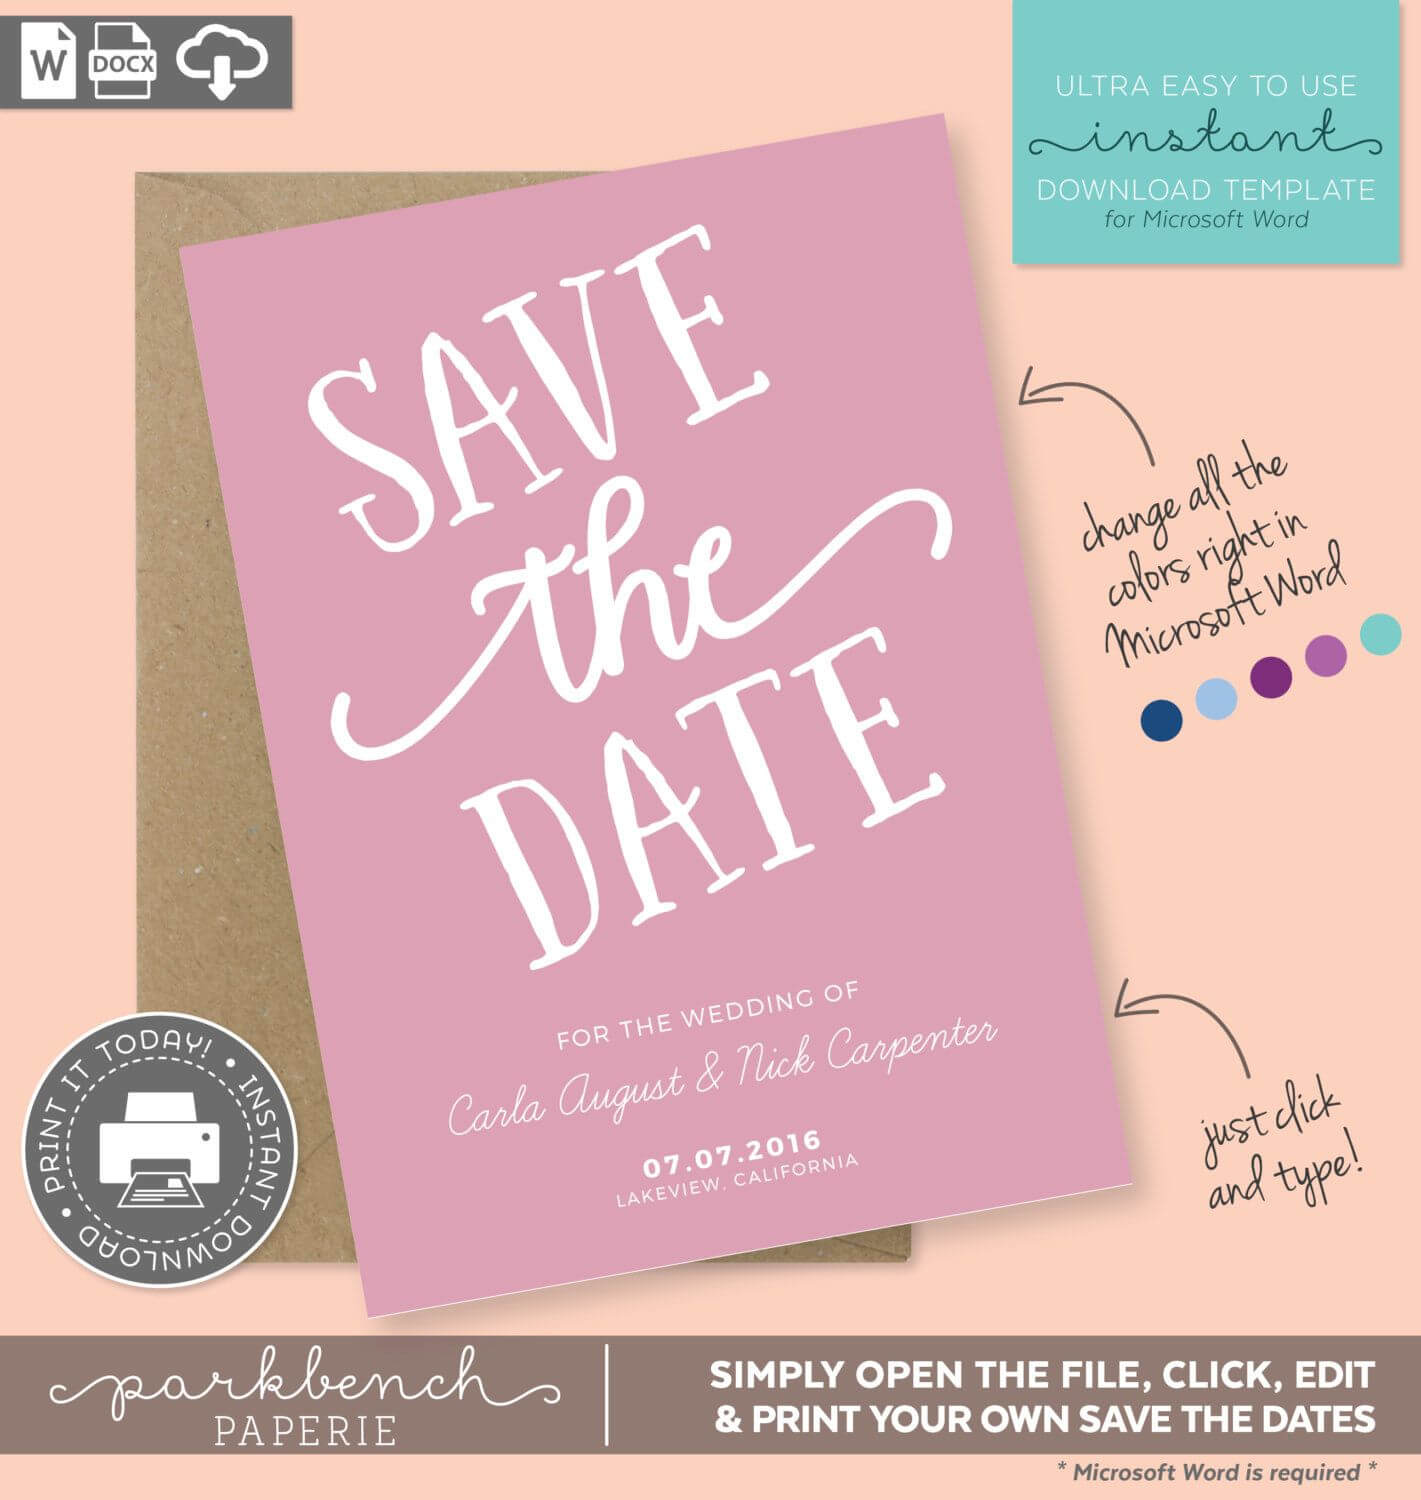 004 Save The Date Templates Word Template Frightening Ideas With Regard To Save The Date Templates Word